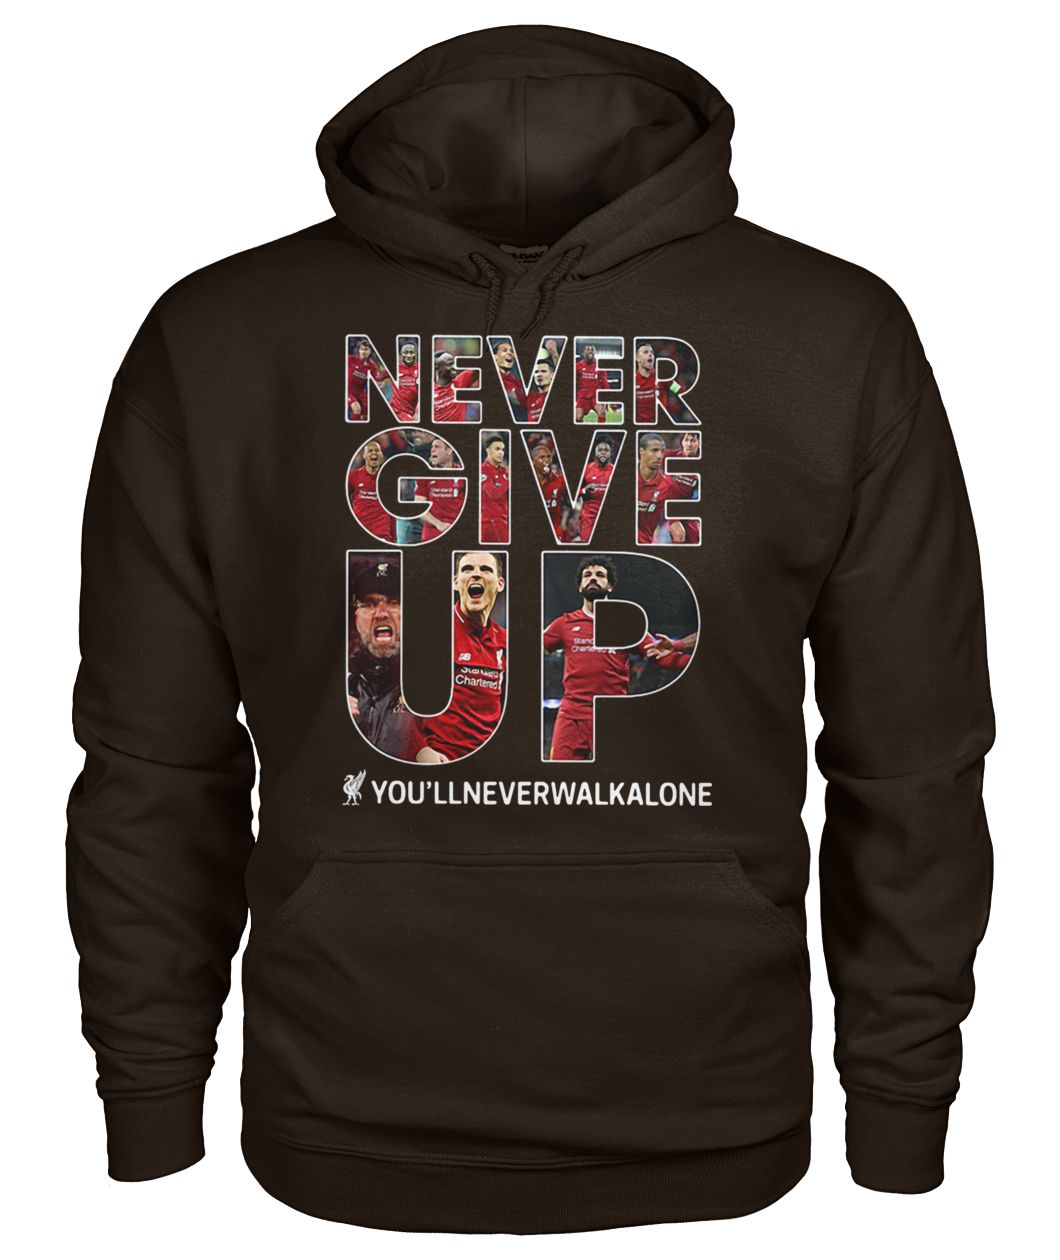 Liverpool never give up you'llneverwalkalone gildan hoodie